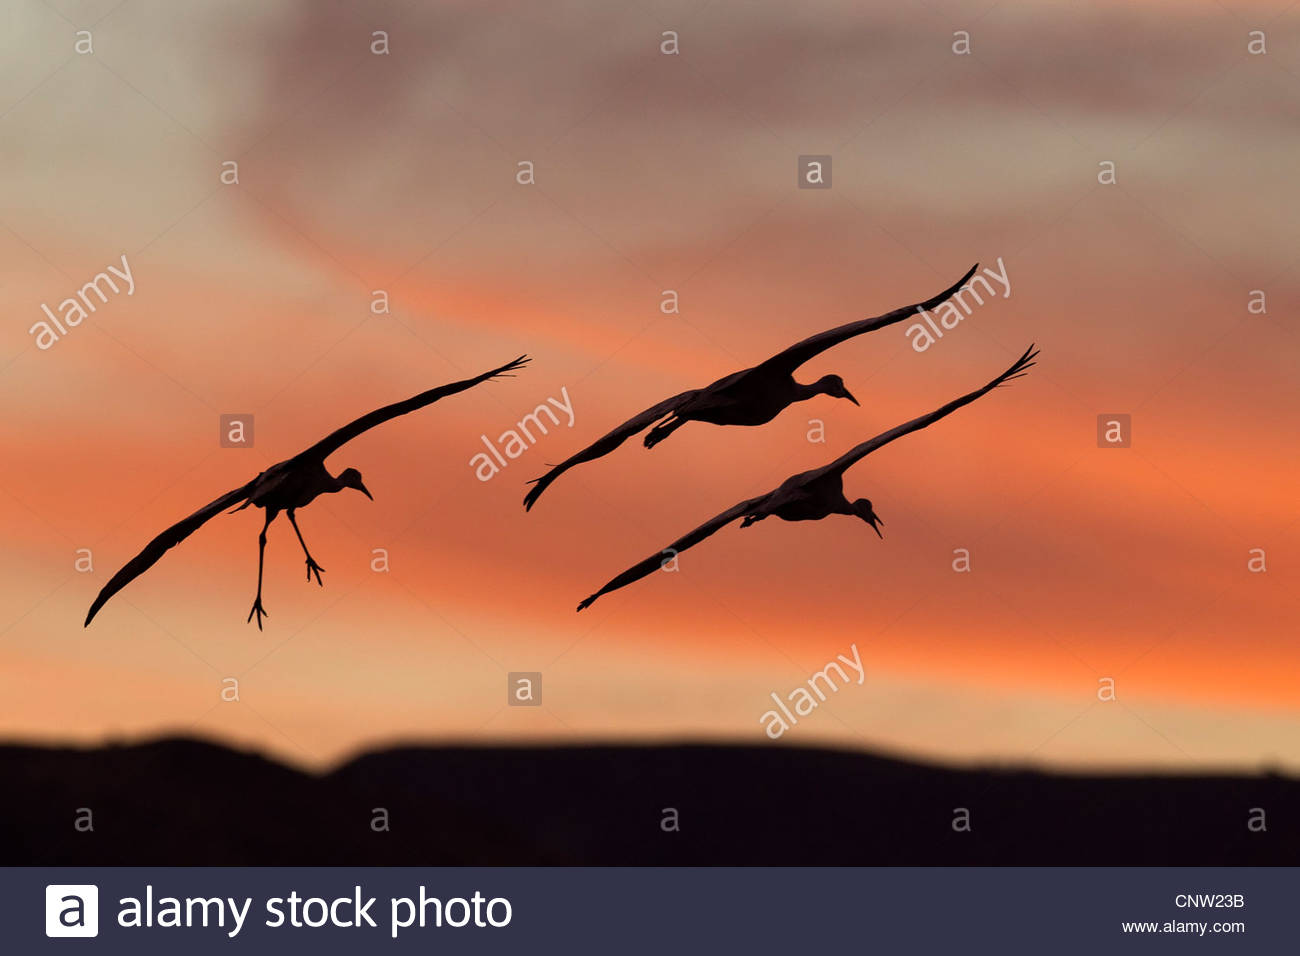 Three sandhill cranes (Grus canadensis) prepare to land after sunset on a pond at Bosque del Apache in New Mexico. - Stock Image